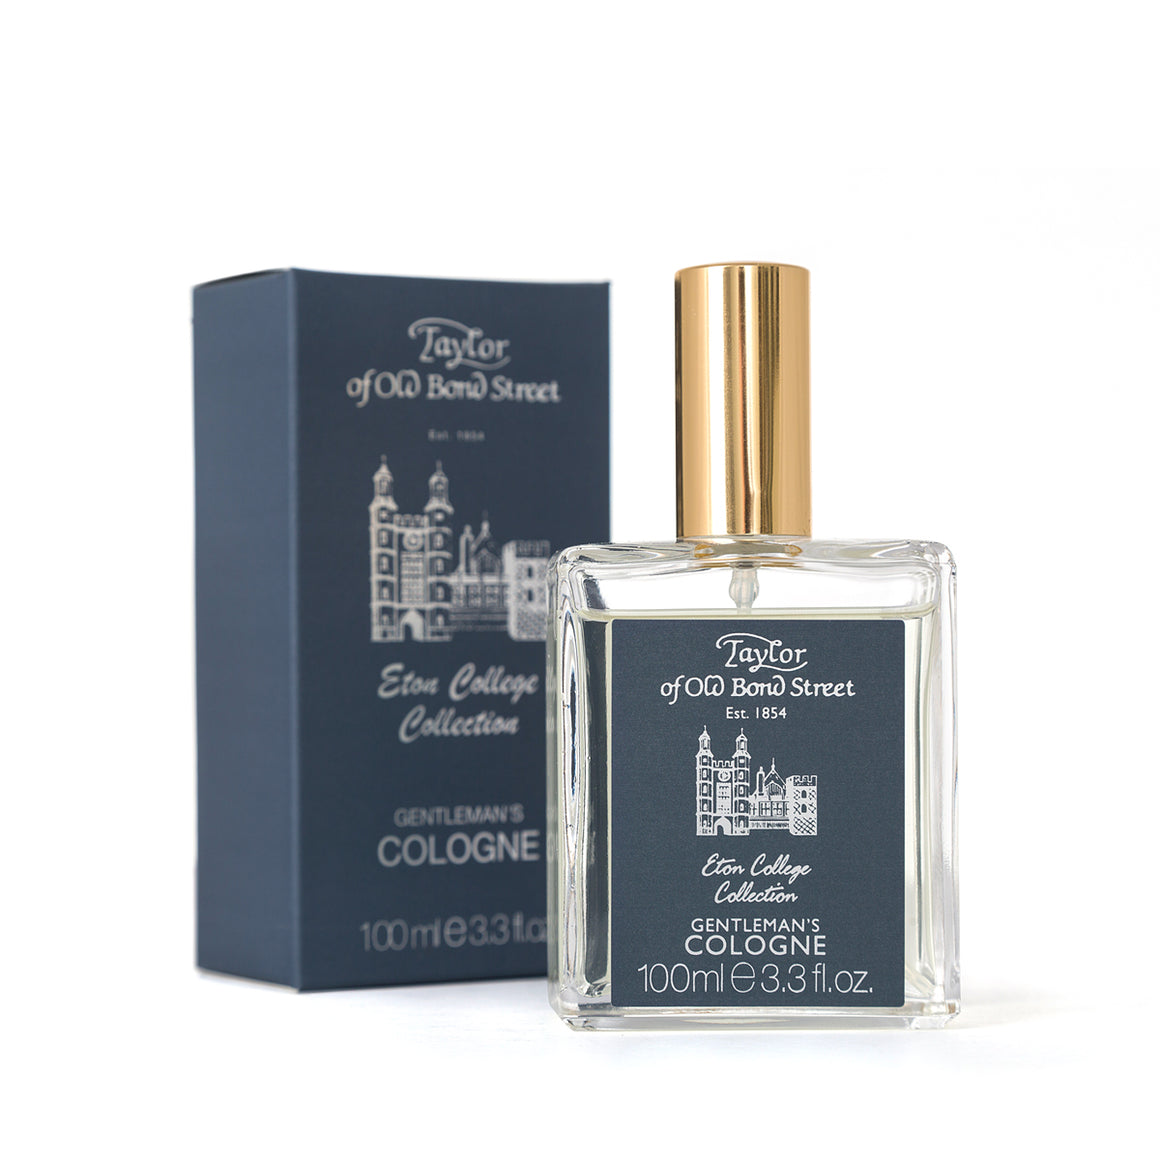 Eton College Collection Cologne 100ml